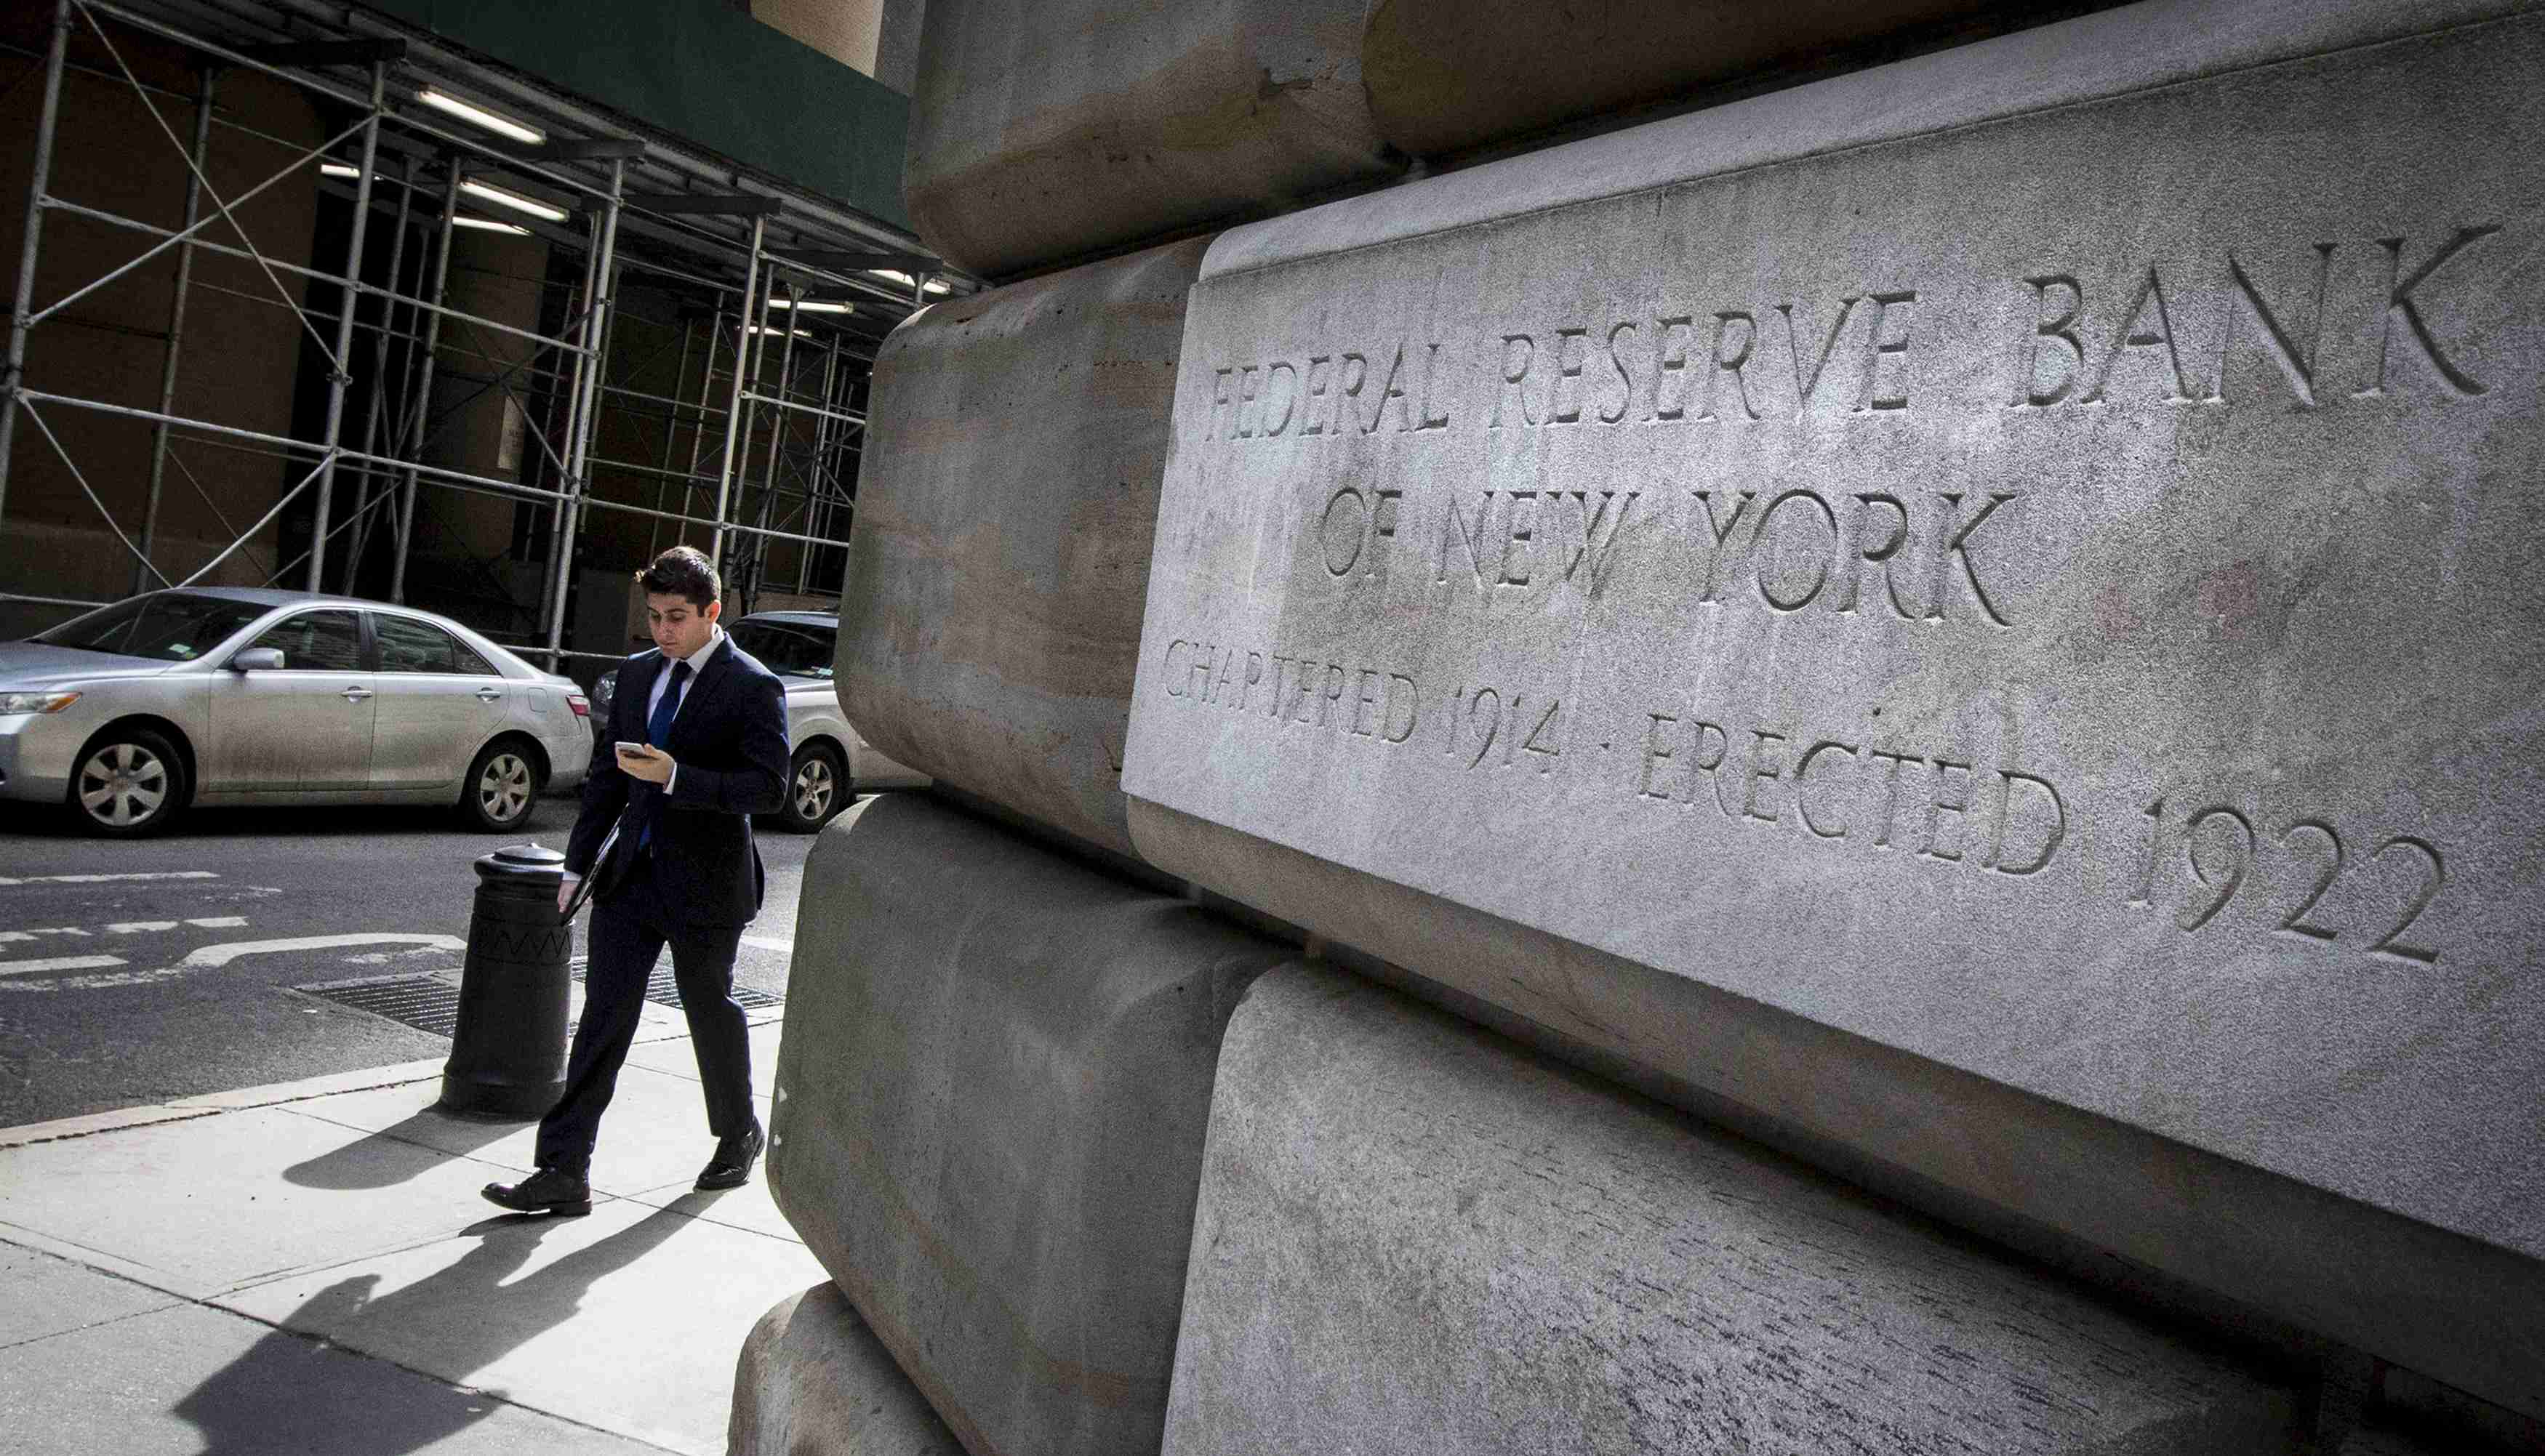 The corner stone of The New York Federal Reserve Bank is seen in New York's financial district March 25, 2015. The Federal Reserve should remain on track to raise interest rates later this year despite the U.S. economy's weak start to the year and a stock market sell-off this week, two Fed officials said on Thursday. REUTERS/Brendan McDermid  - GF10000039419